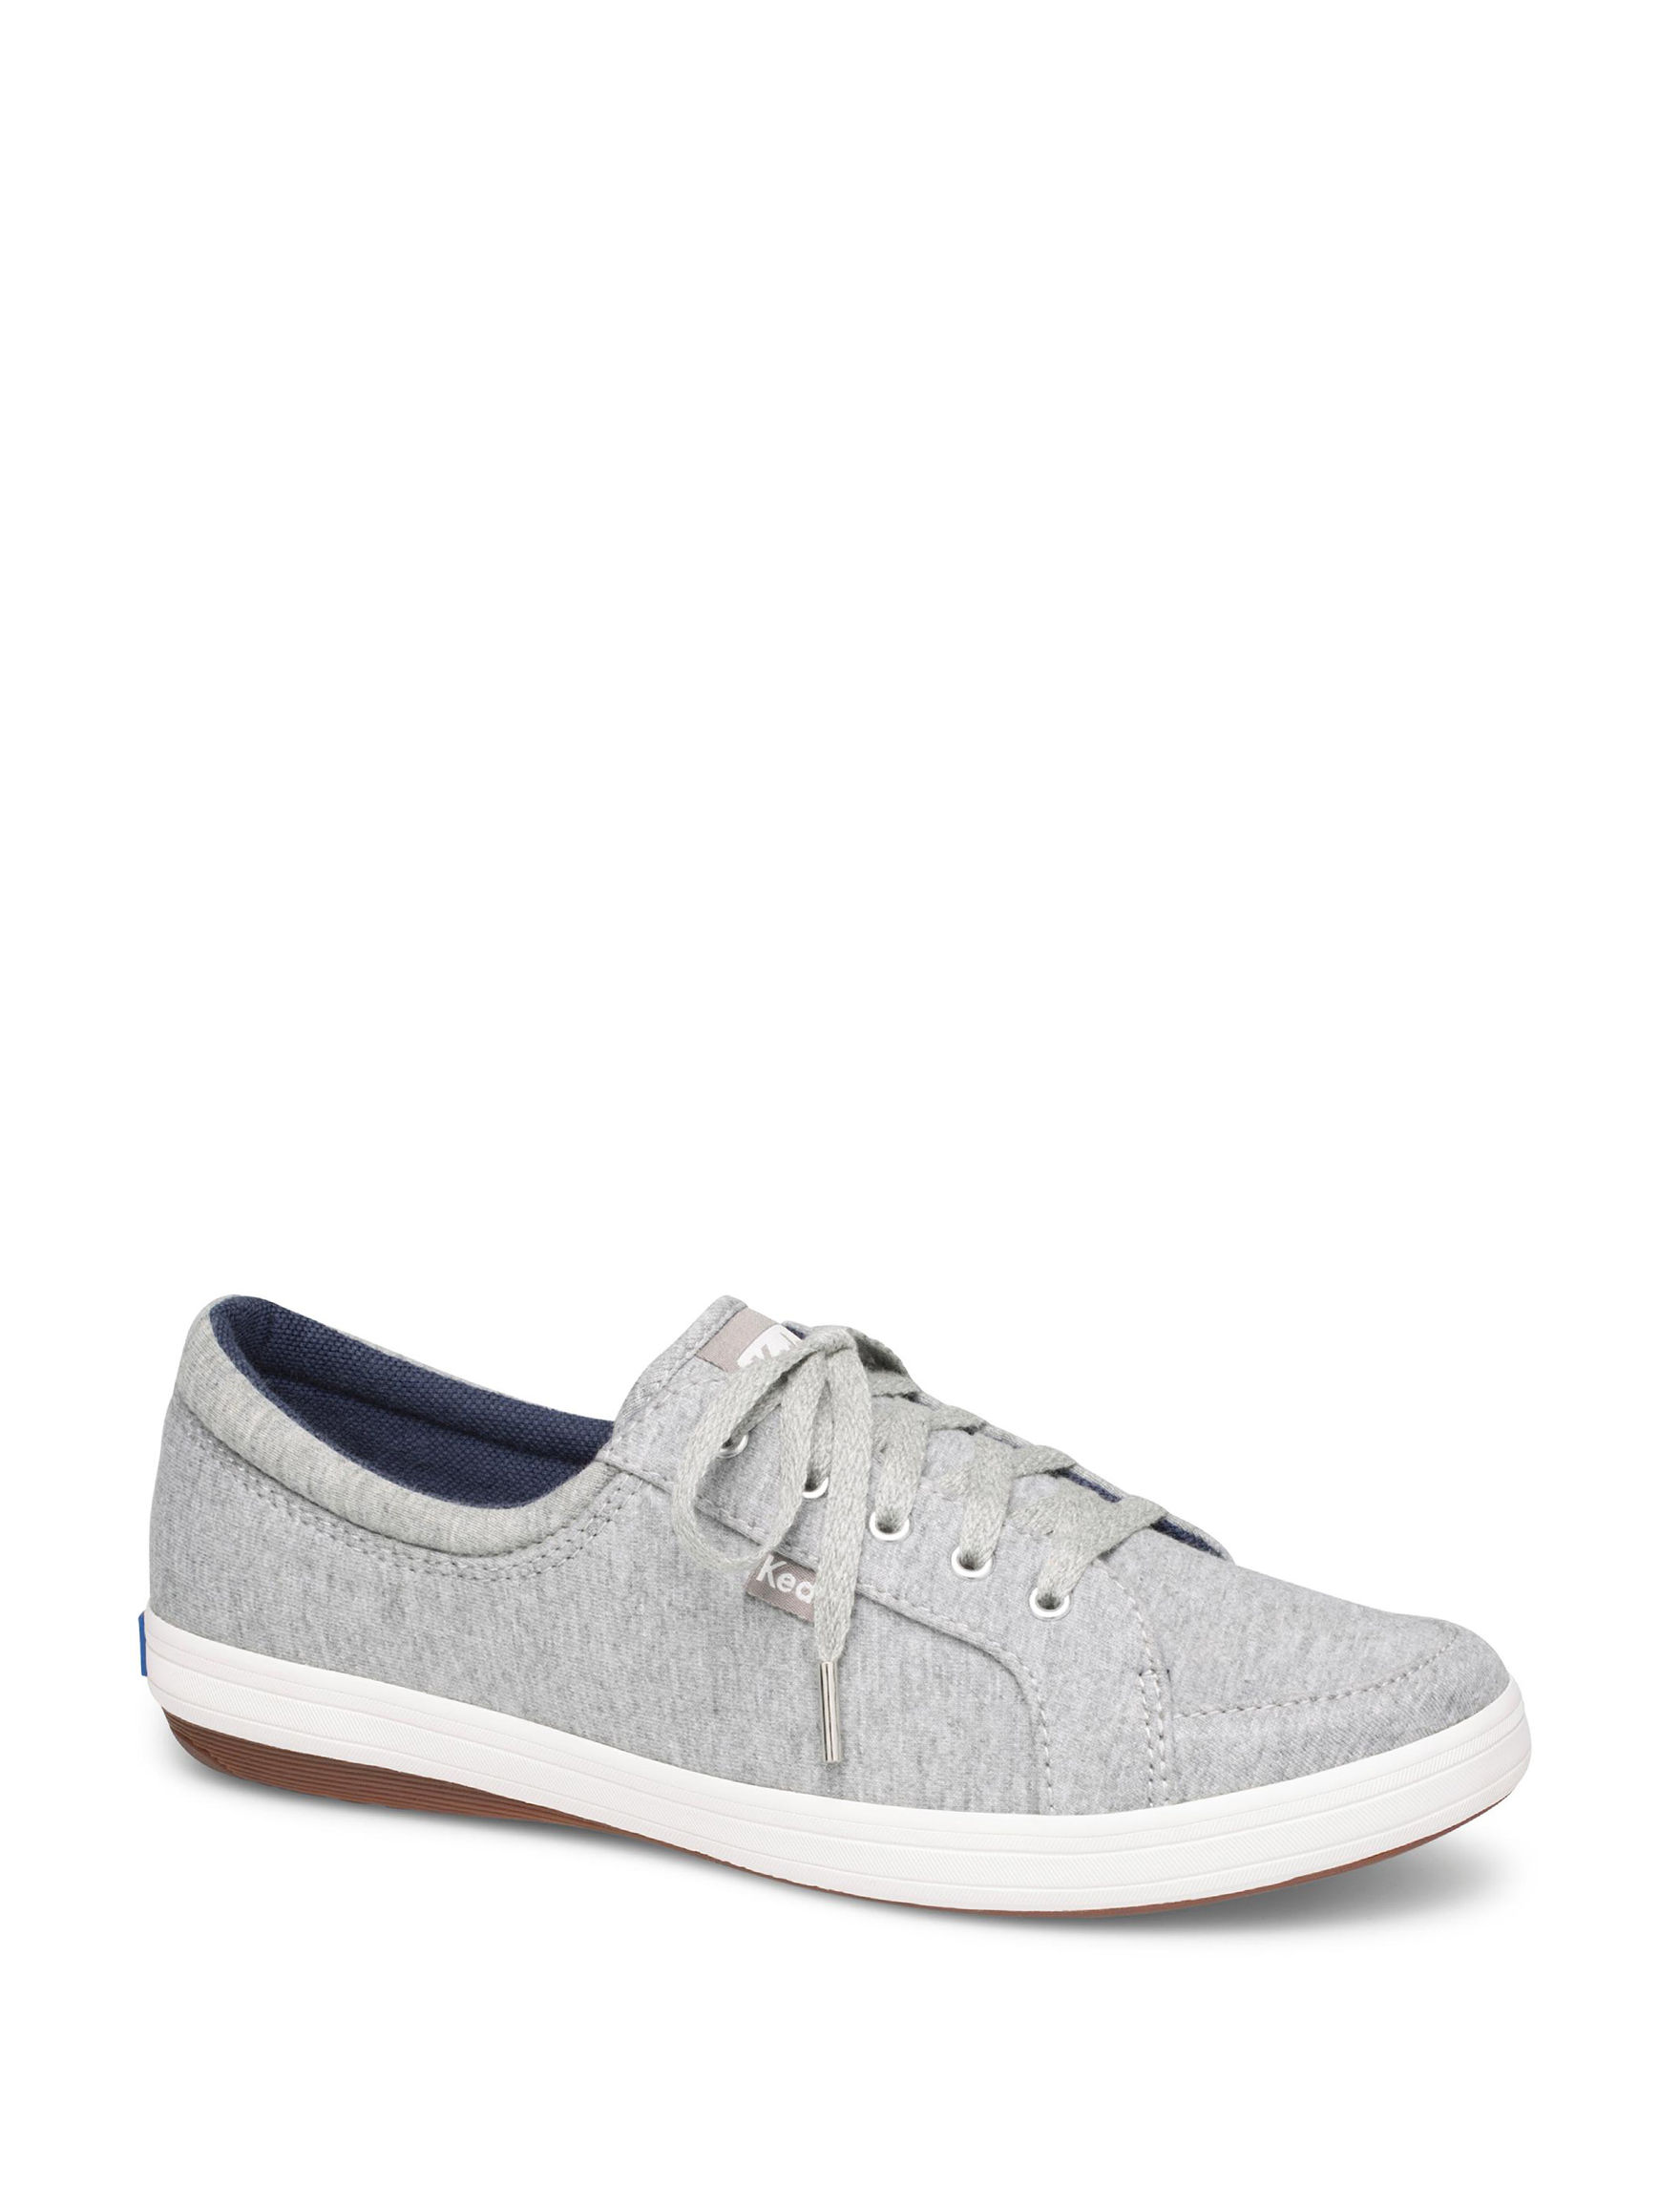 Keds Grey Comfort Shoes